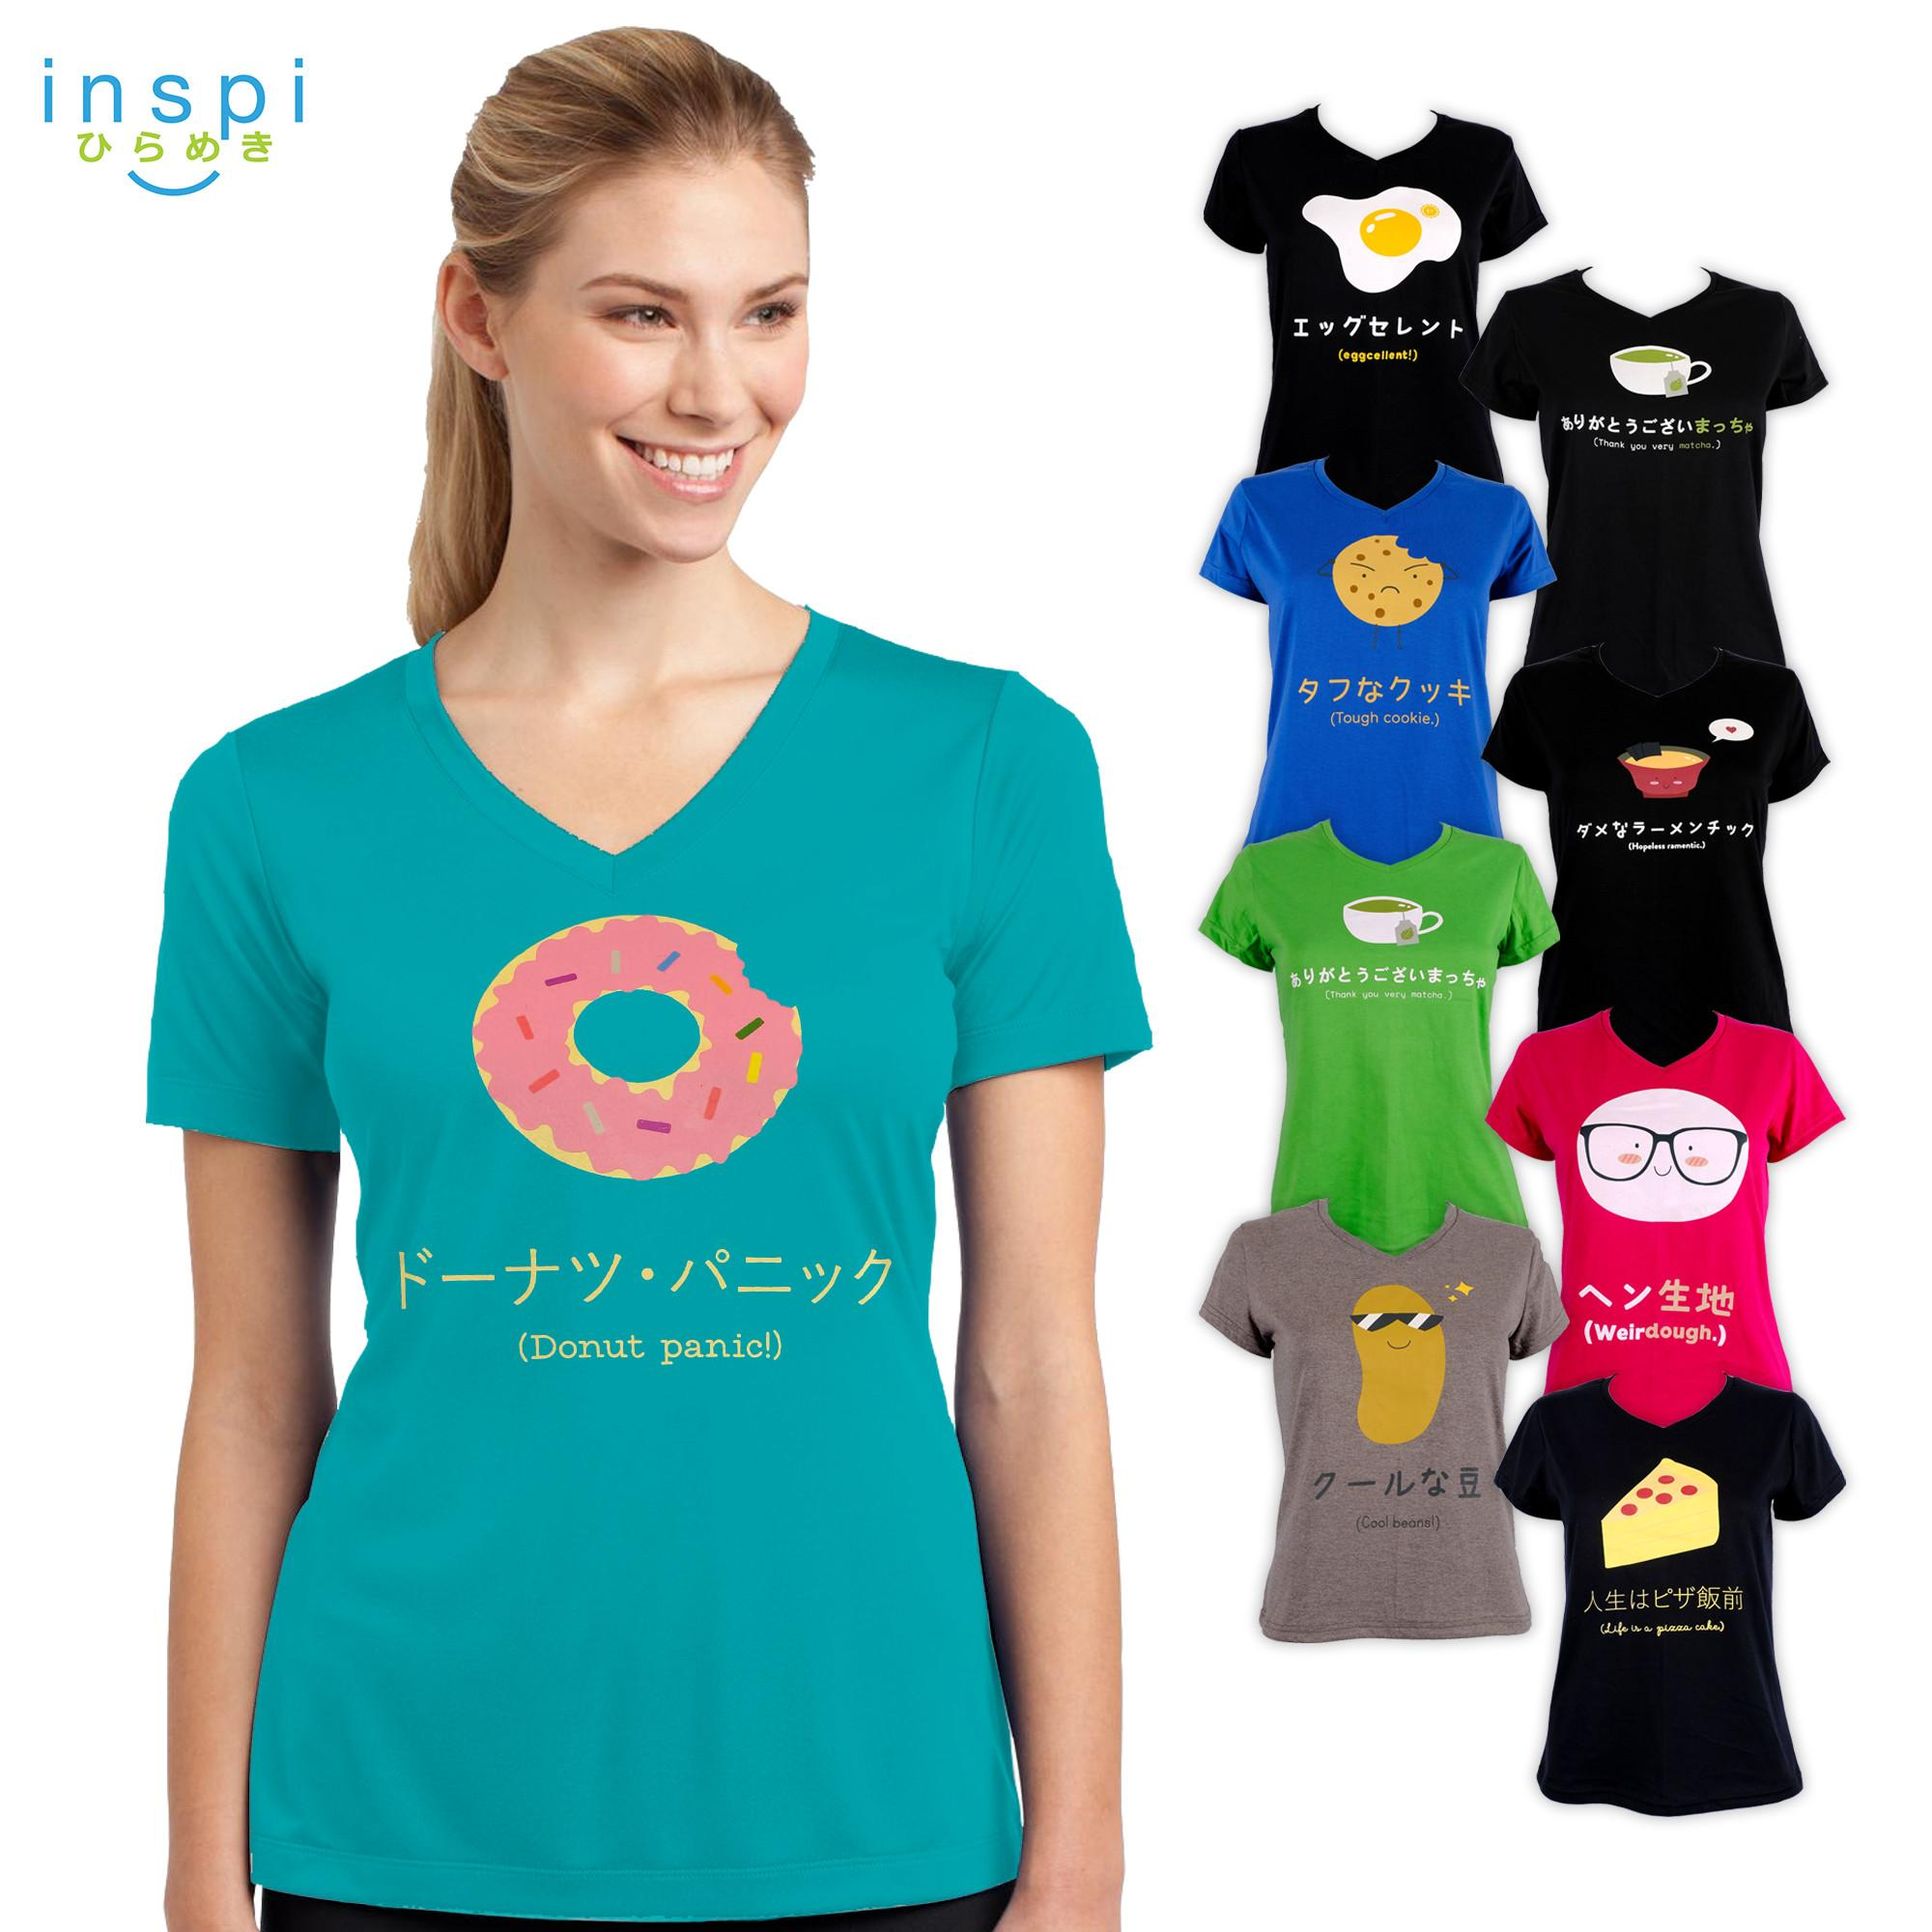 829791175 INSPI Tees Ladies Food Pun Collection tshirt printed graphic tee Ladies t  shirt shirts women tshirts